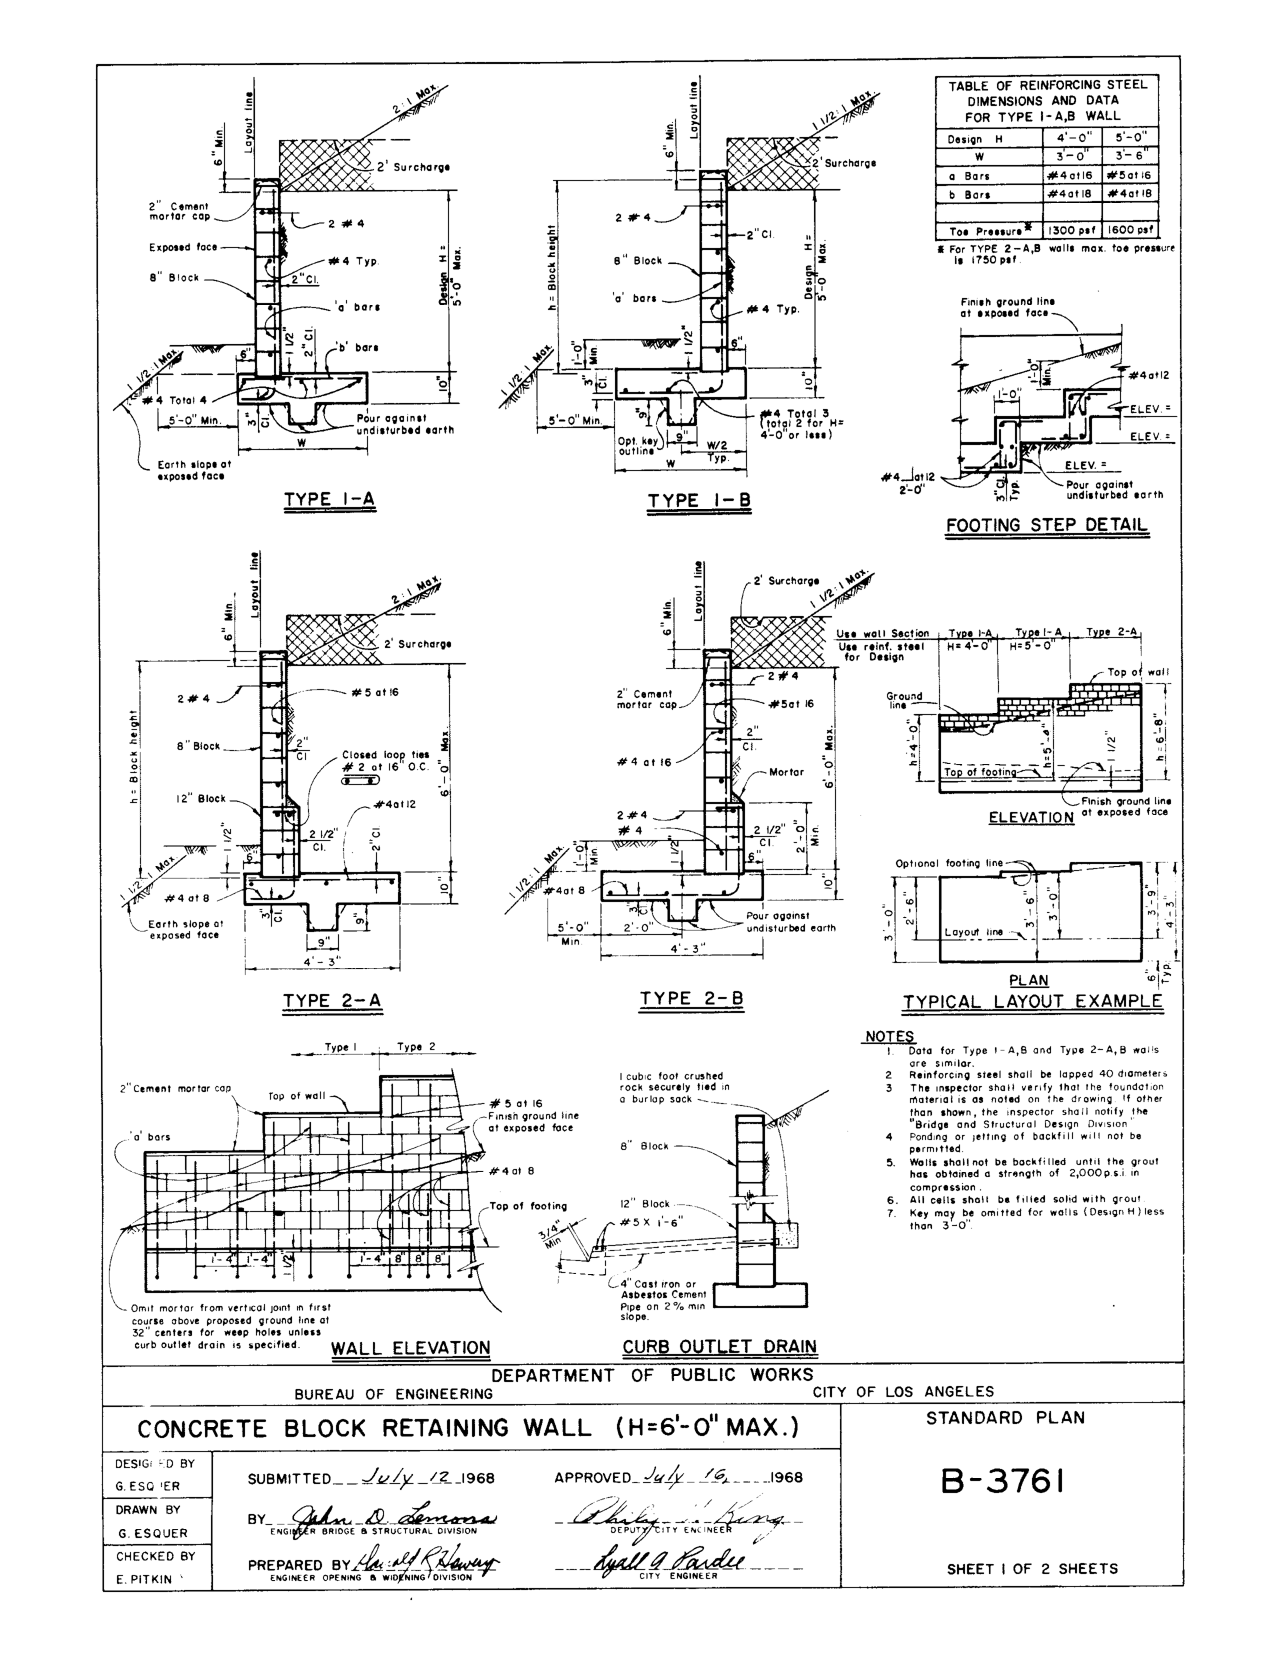 hight resolution of concrete block retaining wall detail architecture building a new home new home construction weblog www thejonathanalonso com newhomeconstruction